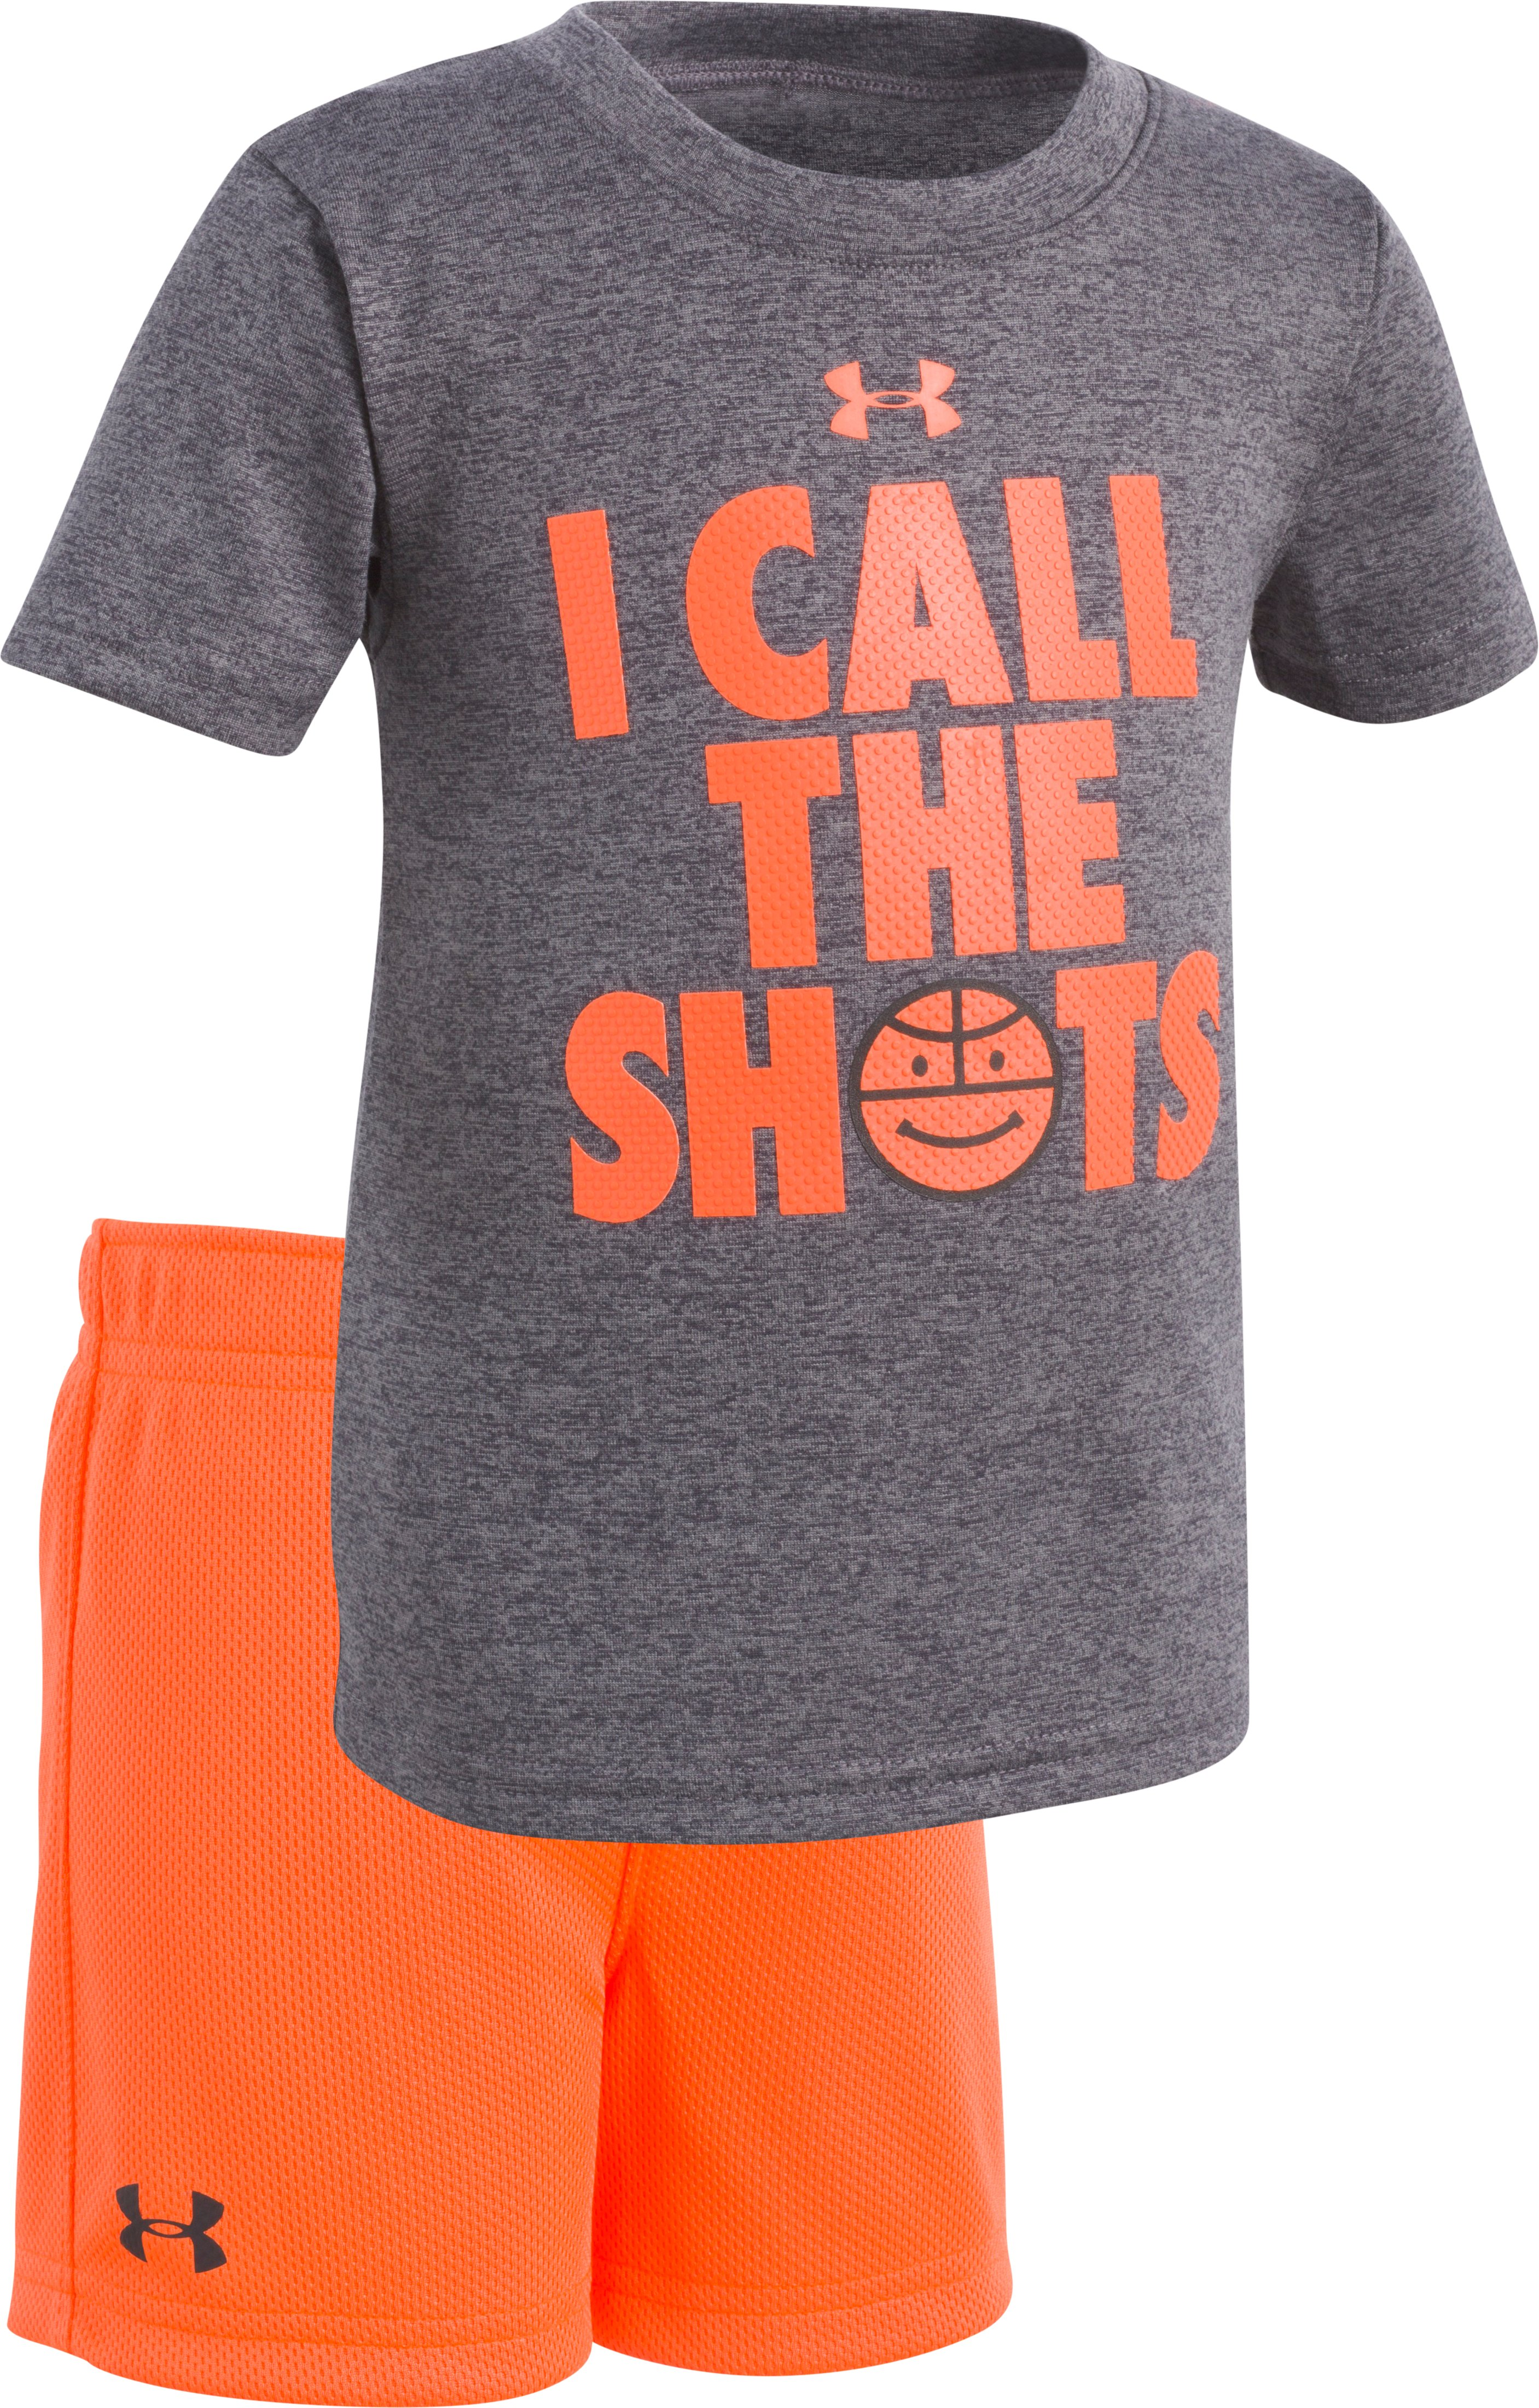 Boys' Infant UA Dunk You Very Much Set , Charcoal Medium Heather, zoomed